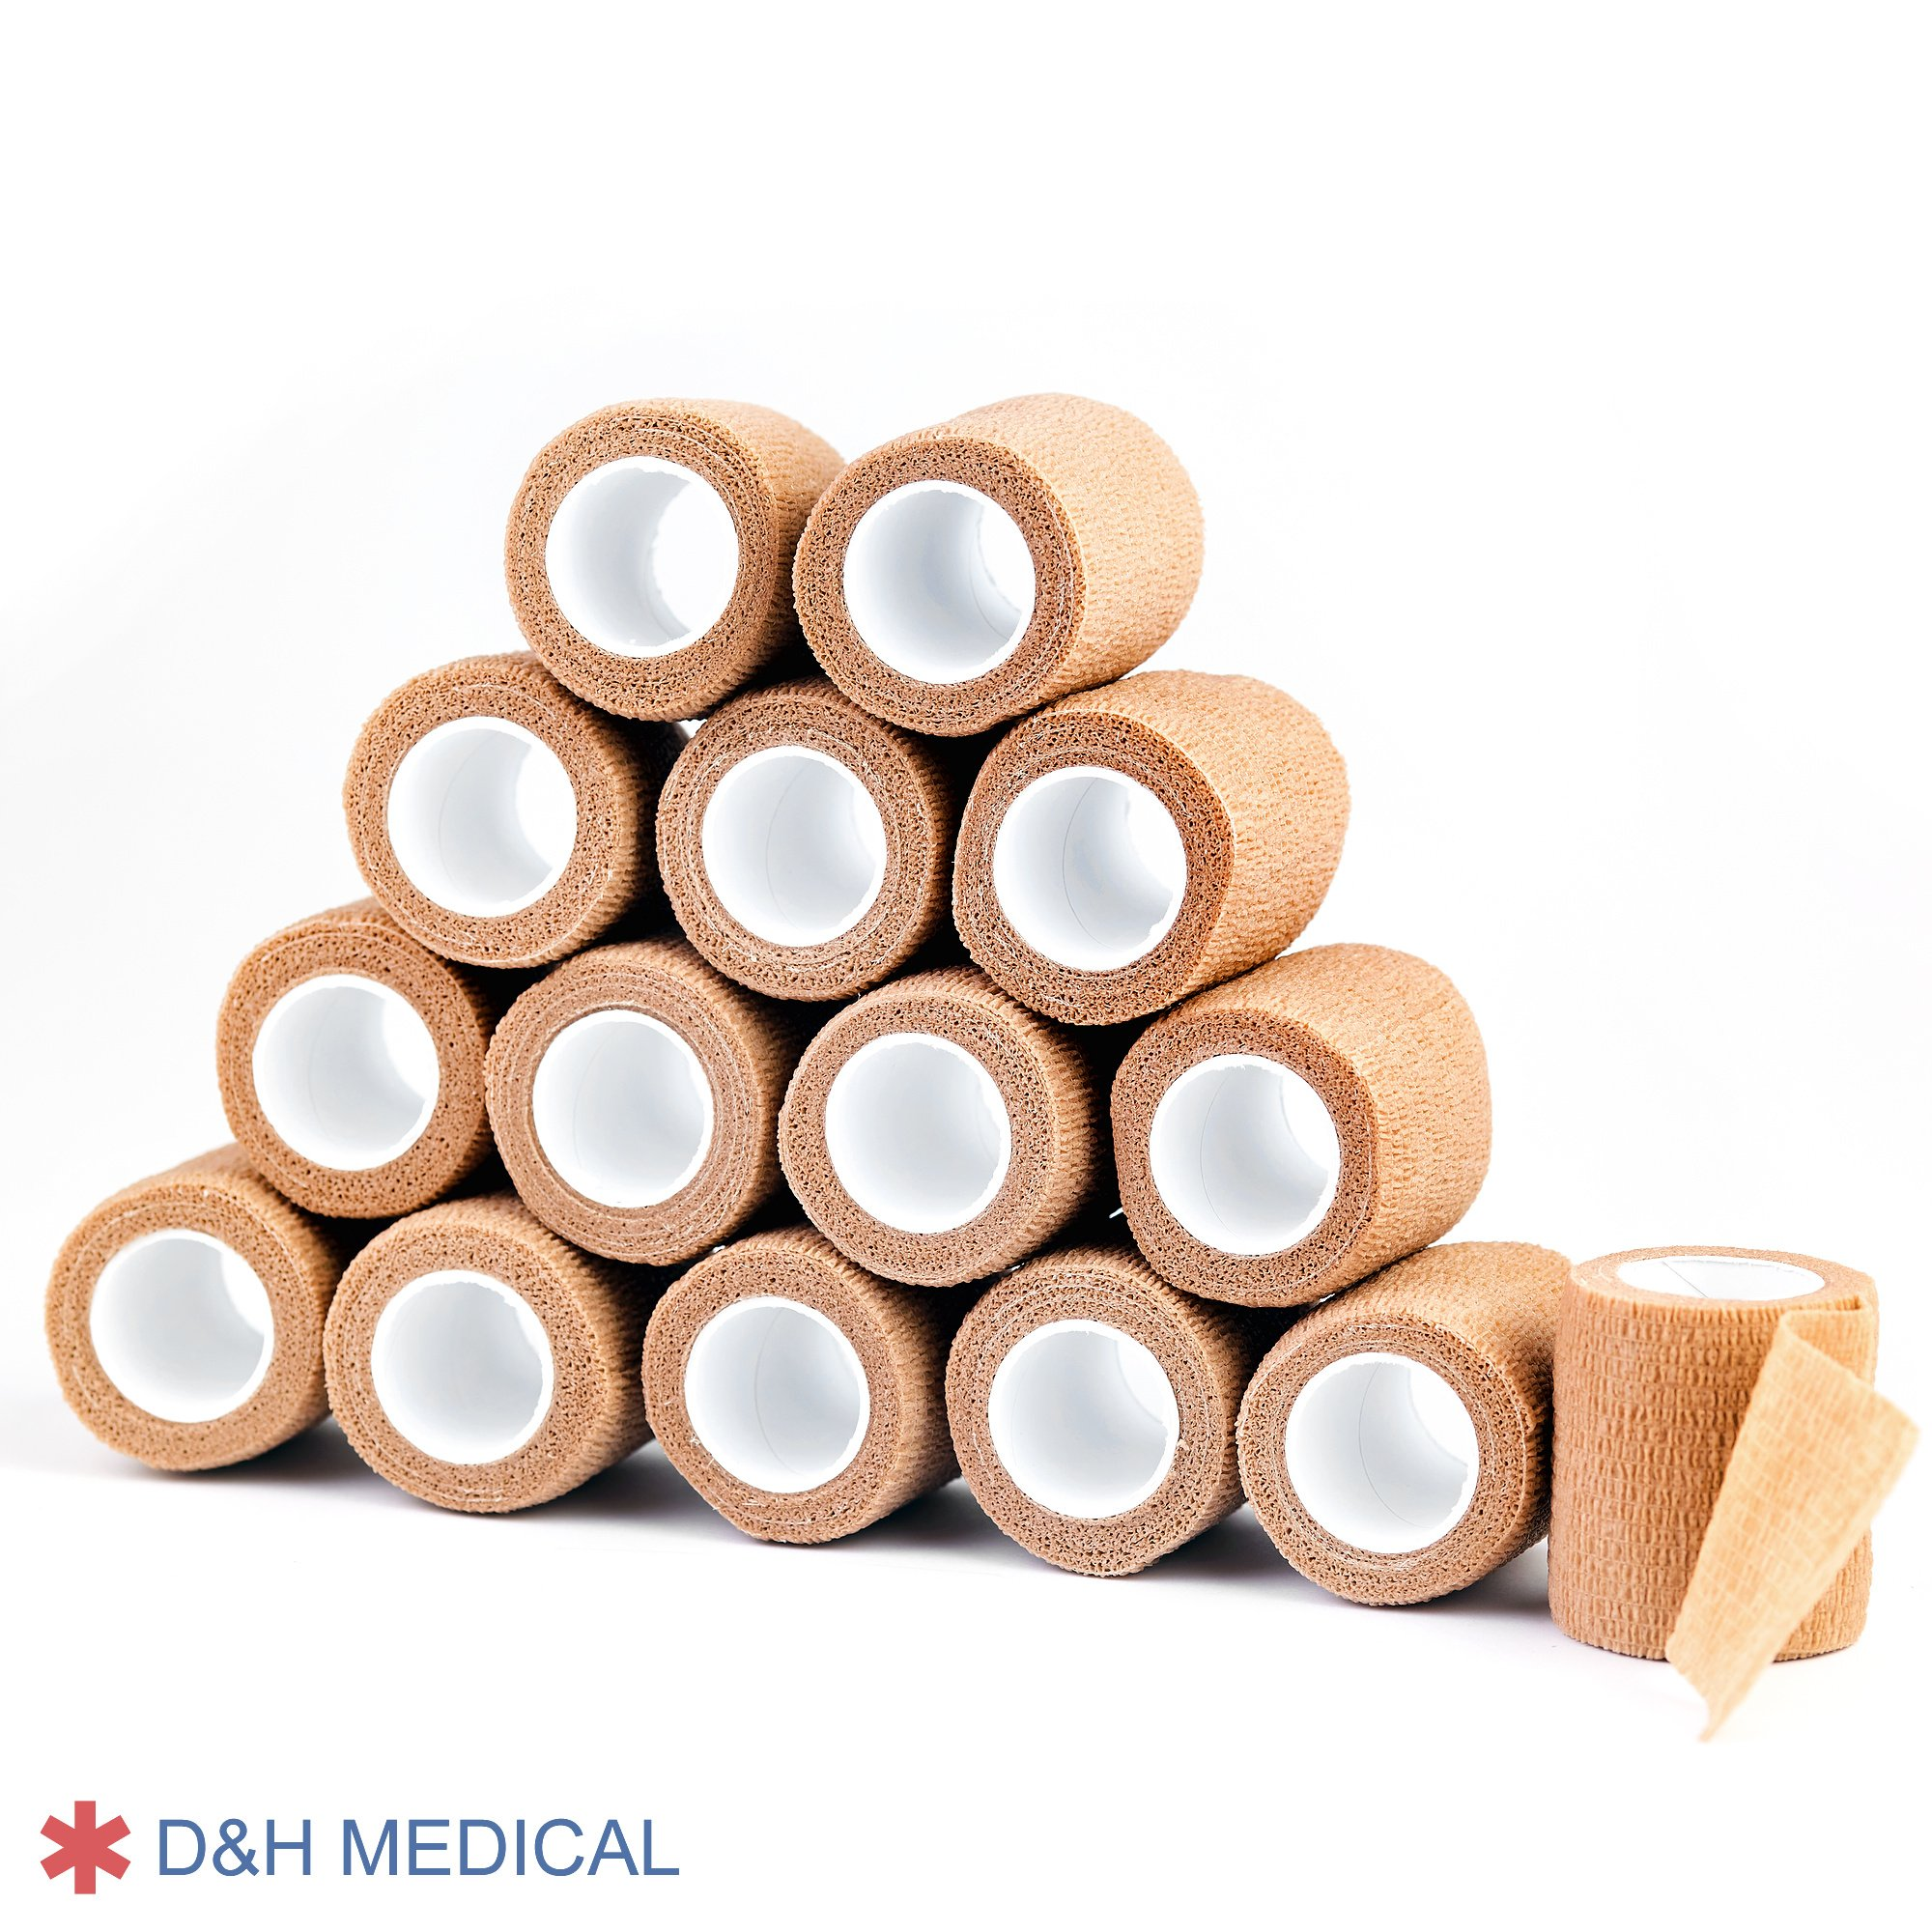 15 Bulk Pack Self Adherent Cohesive Wrap Bandages 2 Inches X 5 Yards, Self Adhesive Rolls FDA Approved For Swelling Sprains And Soreness On Wrist And Ankle. First Aid Sports Vet Tape Medical Supplies. by D and H Medical (Image #9)